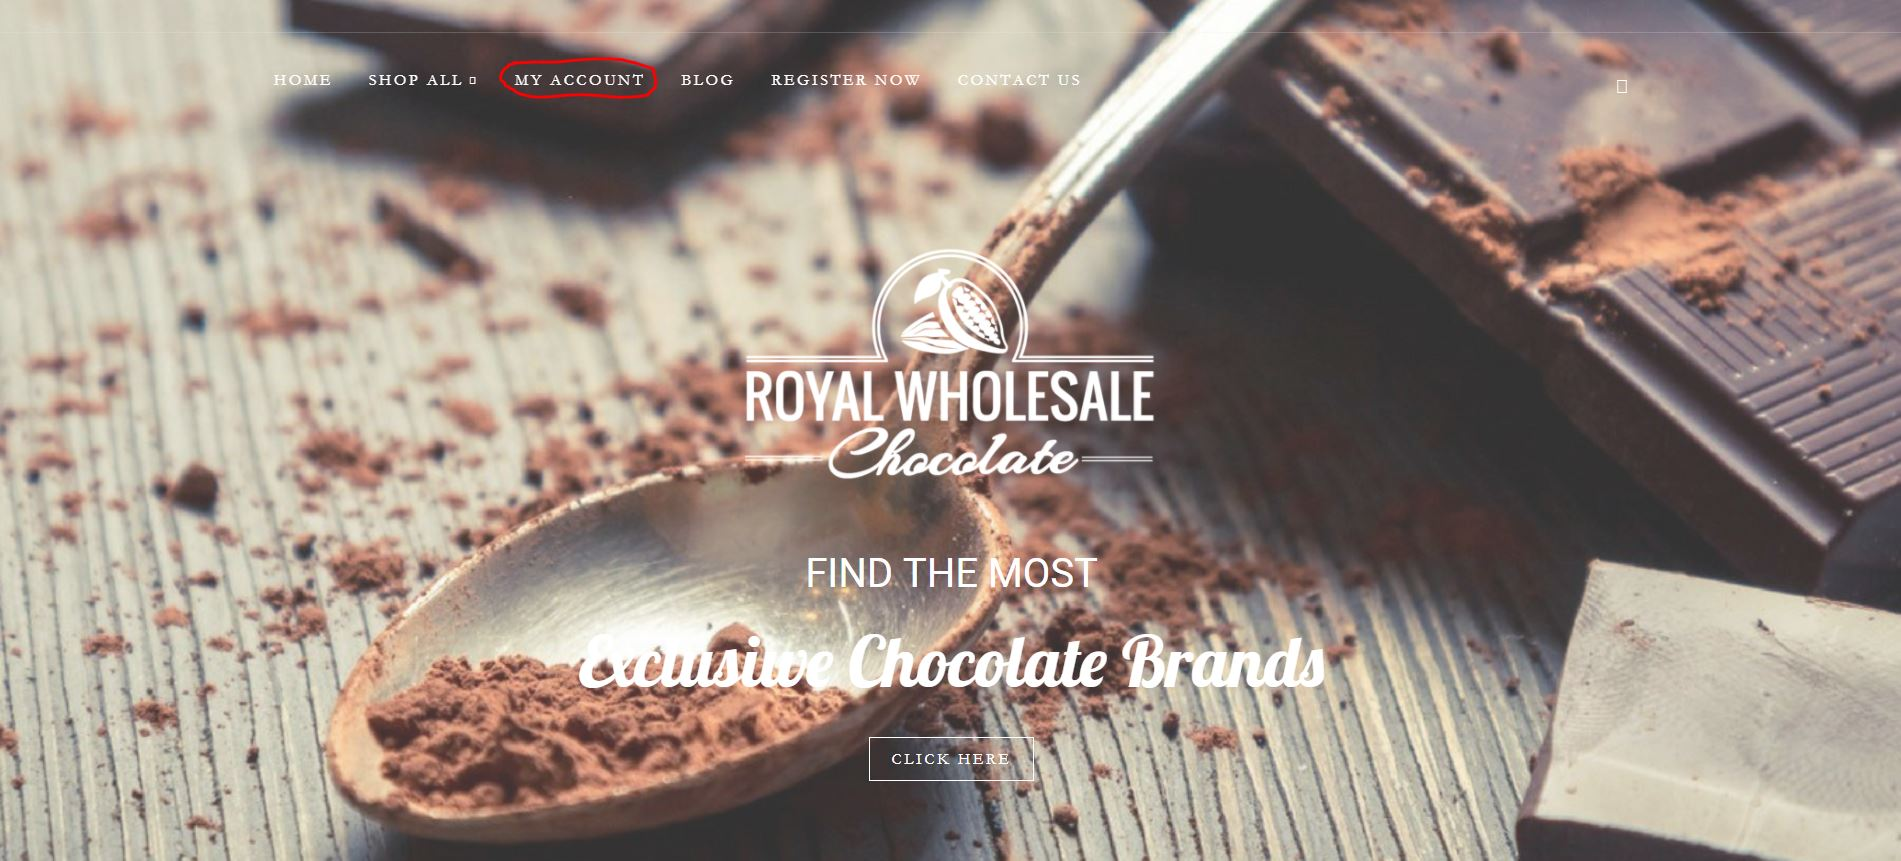 Royal Wholesale Chocolate My Account